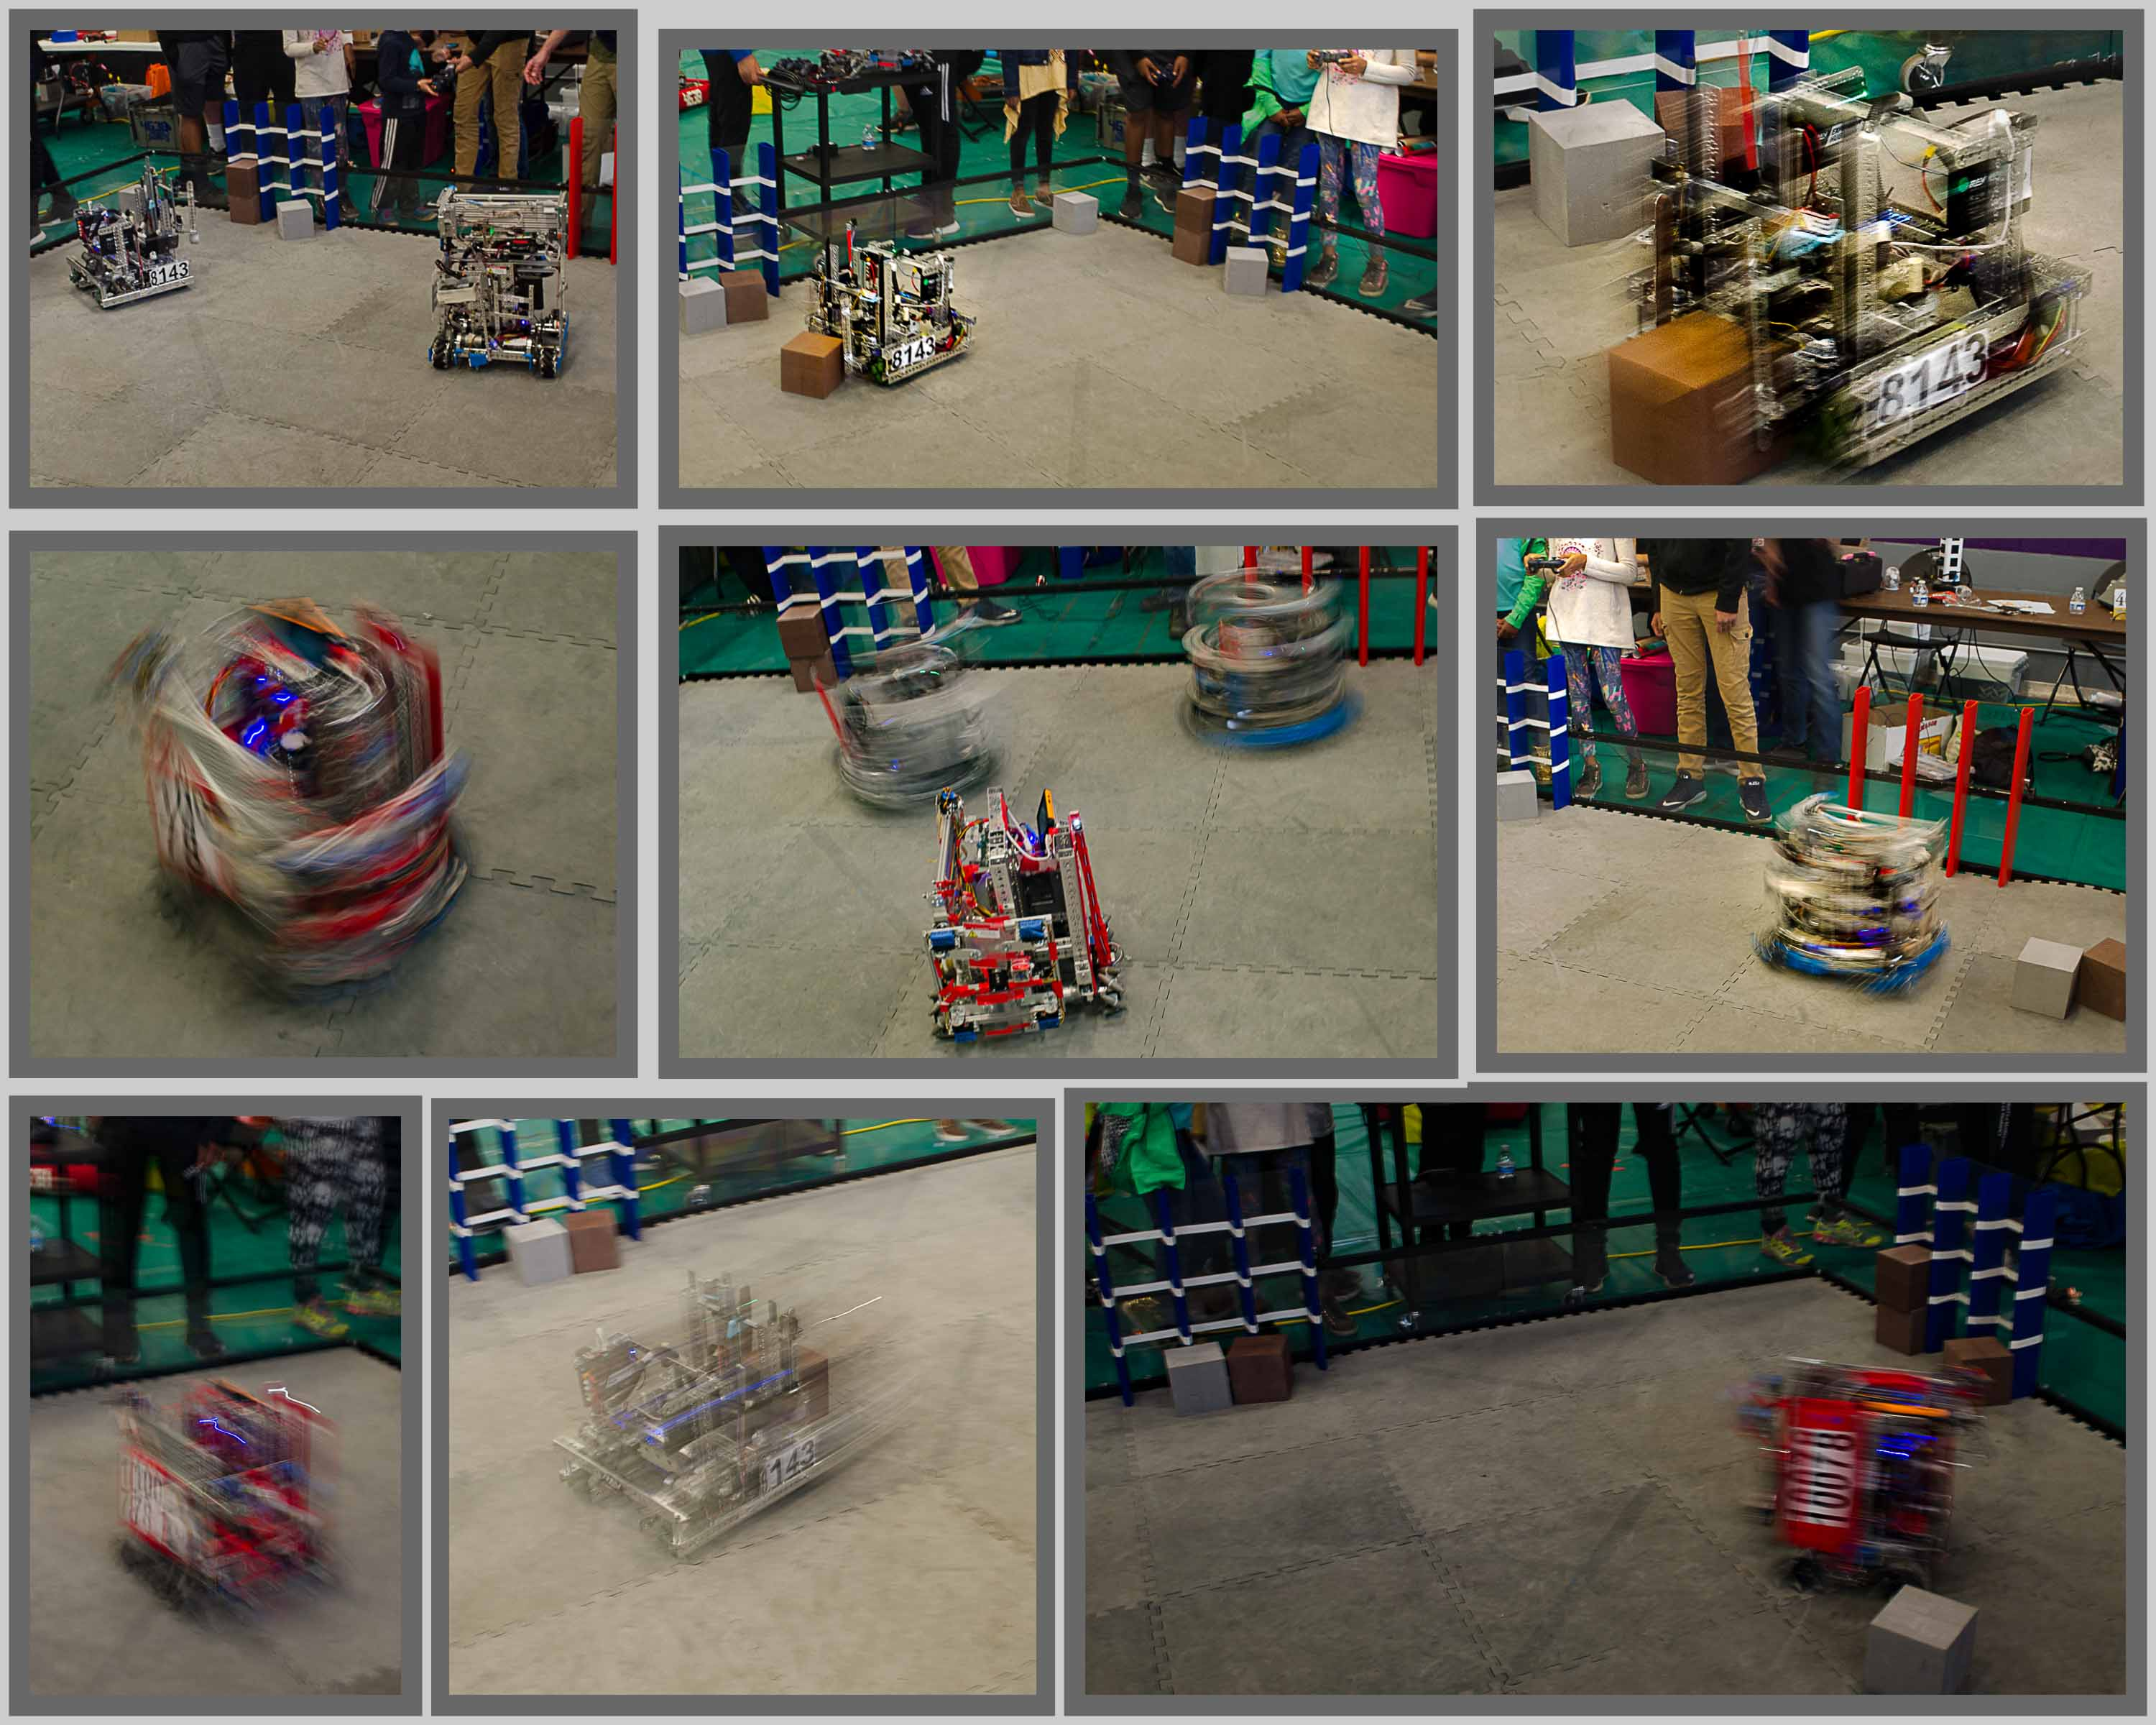 Collage of pictures of demonstrations of remote-controlled robots.